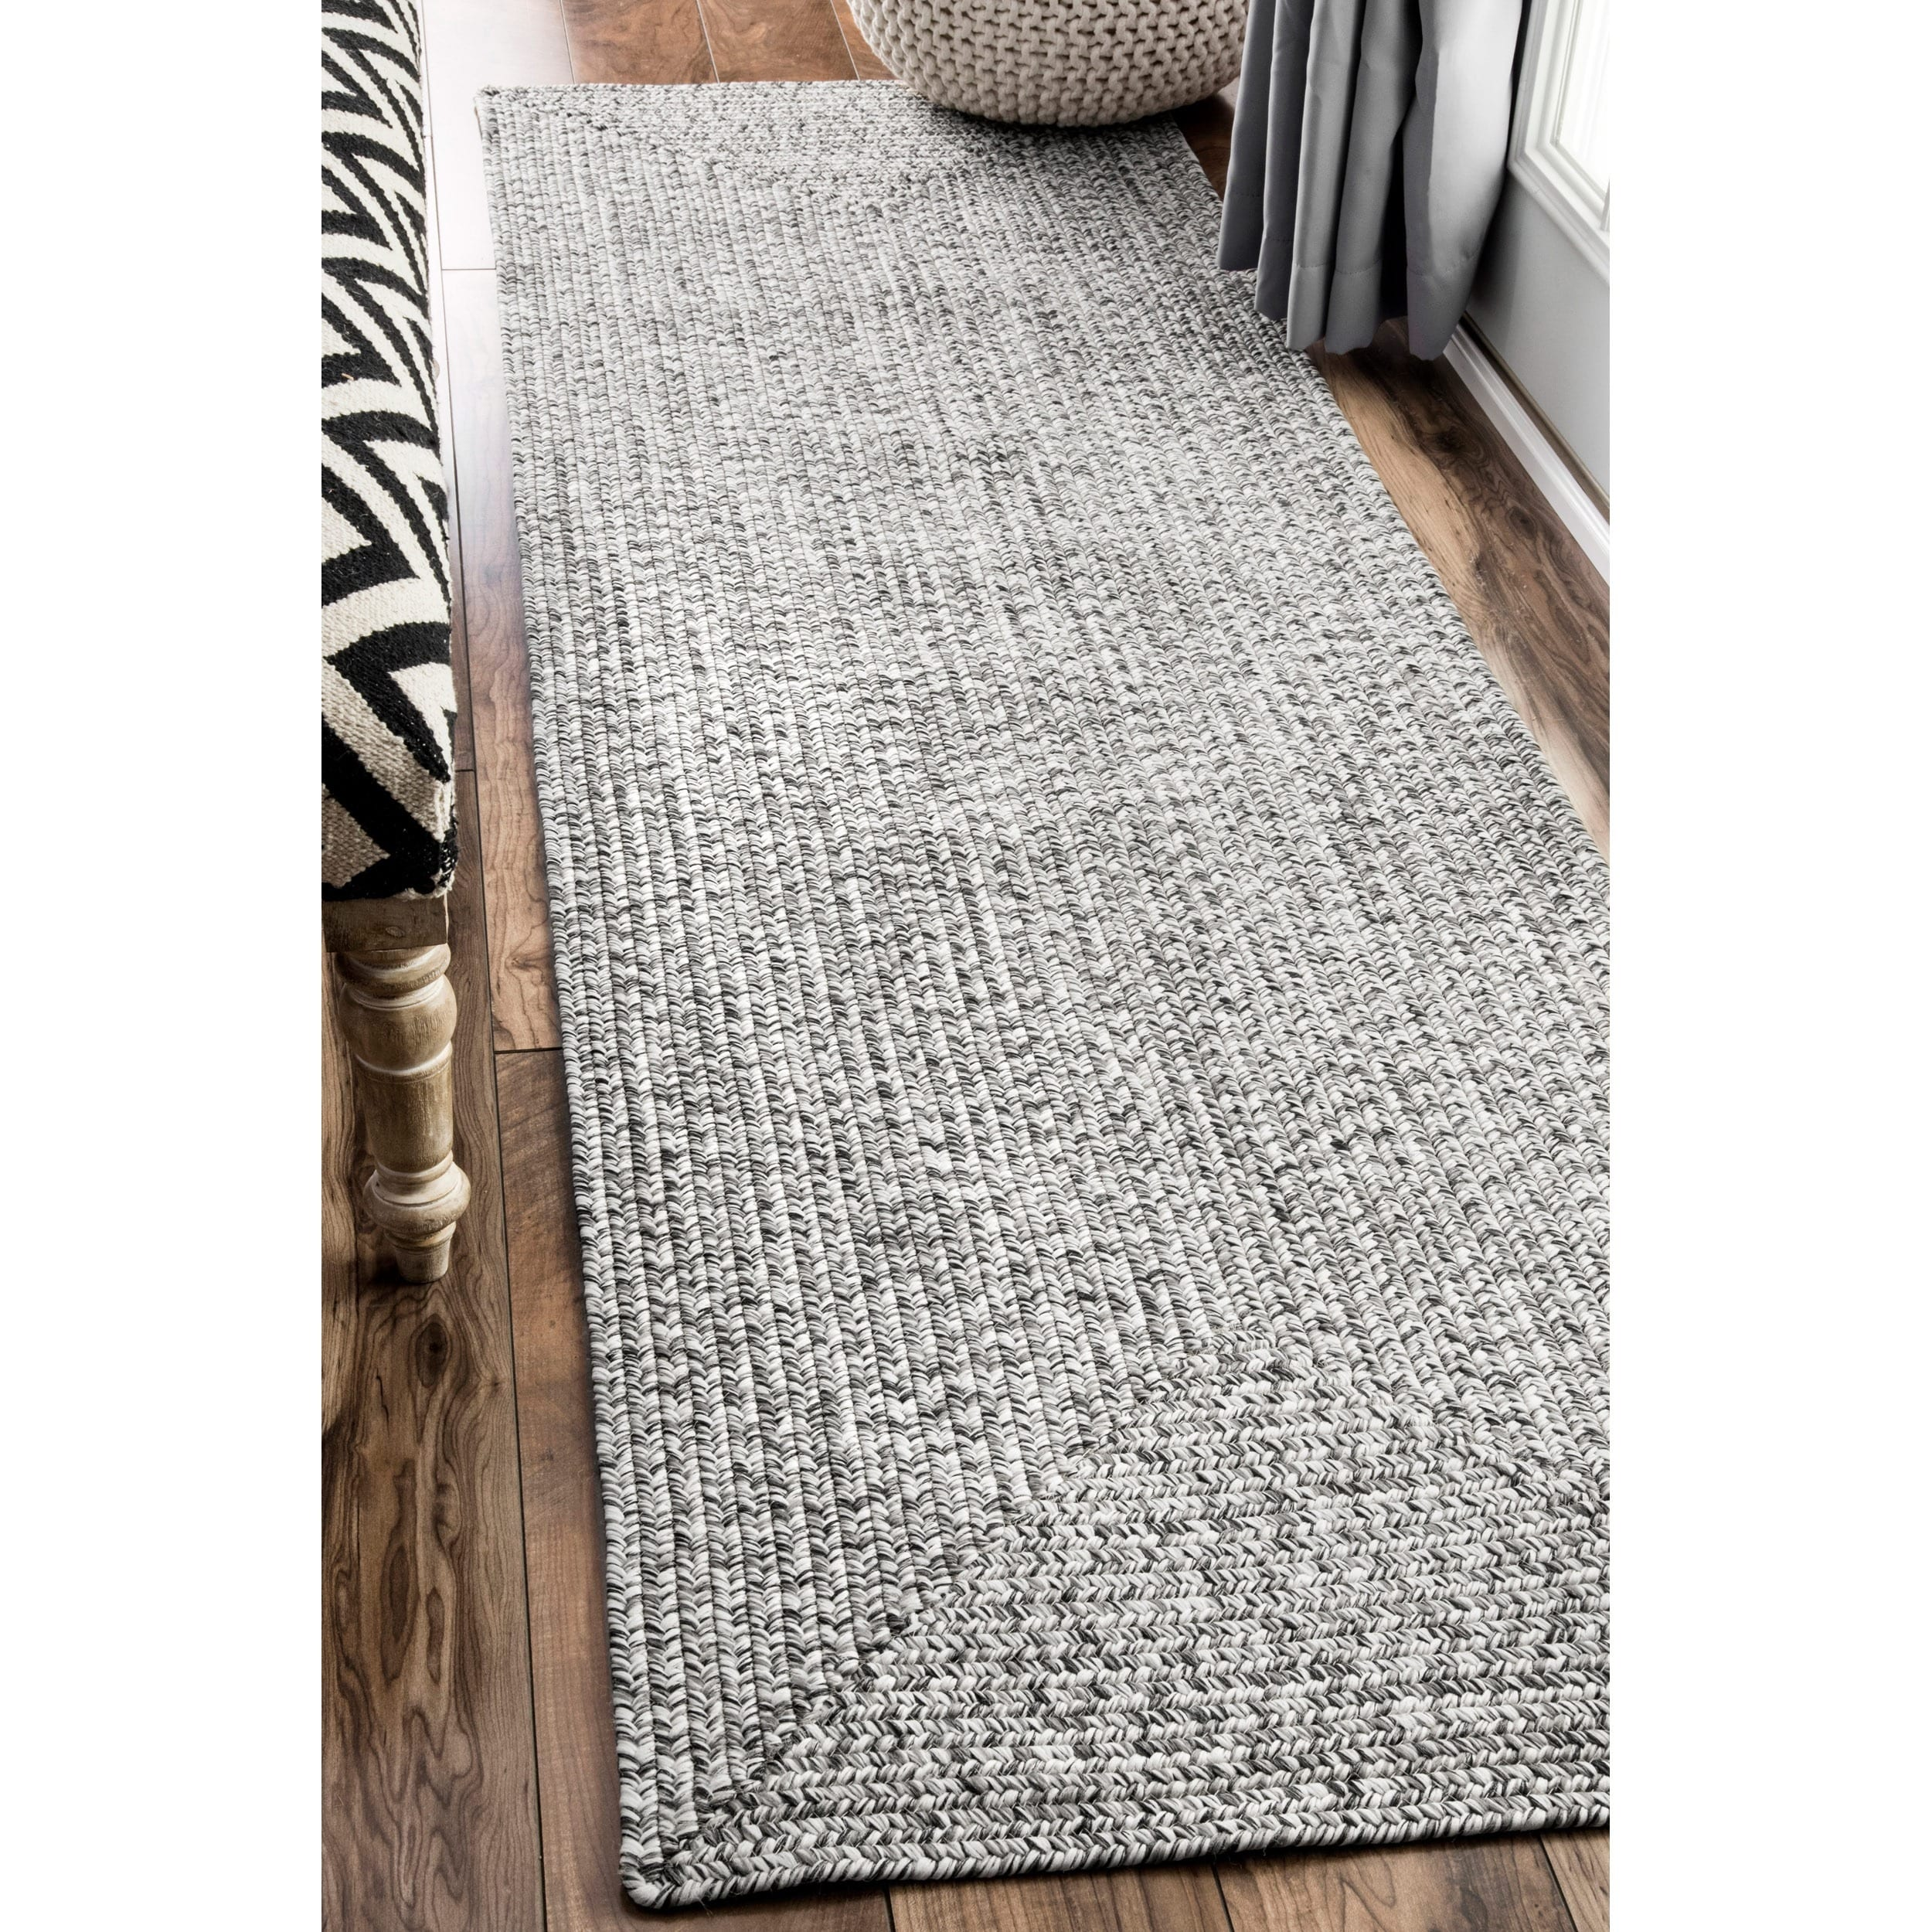 Nuloom Handmade Casual Solid Braided Runner Grey Rug 2 X27 6 X 12